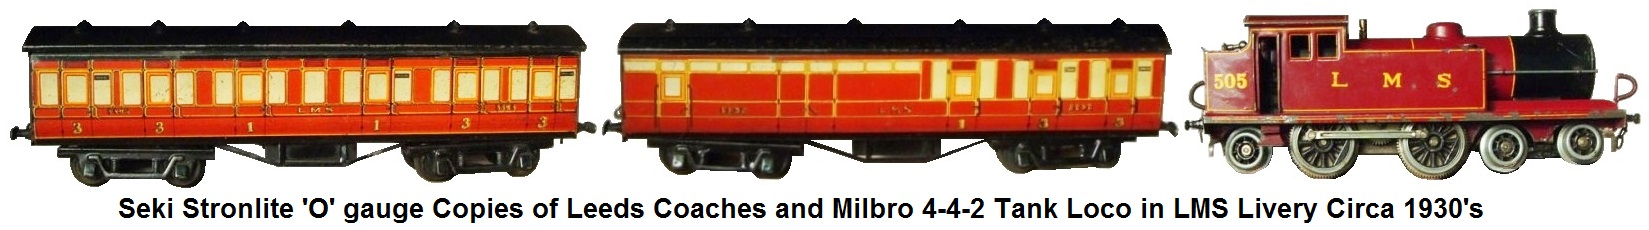 Seki Stronlite 'O' gauge copies of Leeds passenger coaches and Milbro 4-4-2 LMS Tank Loco circa 1930's